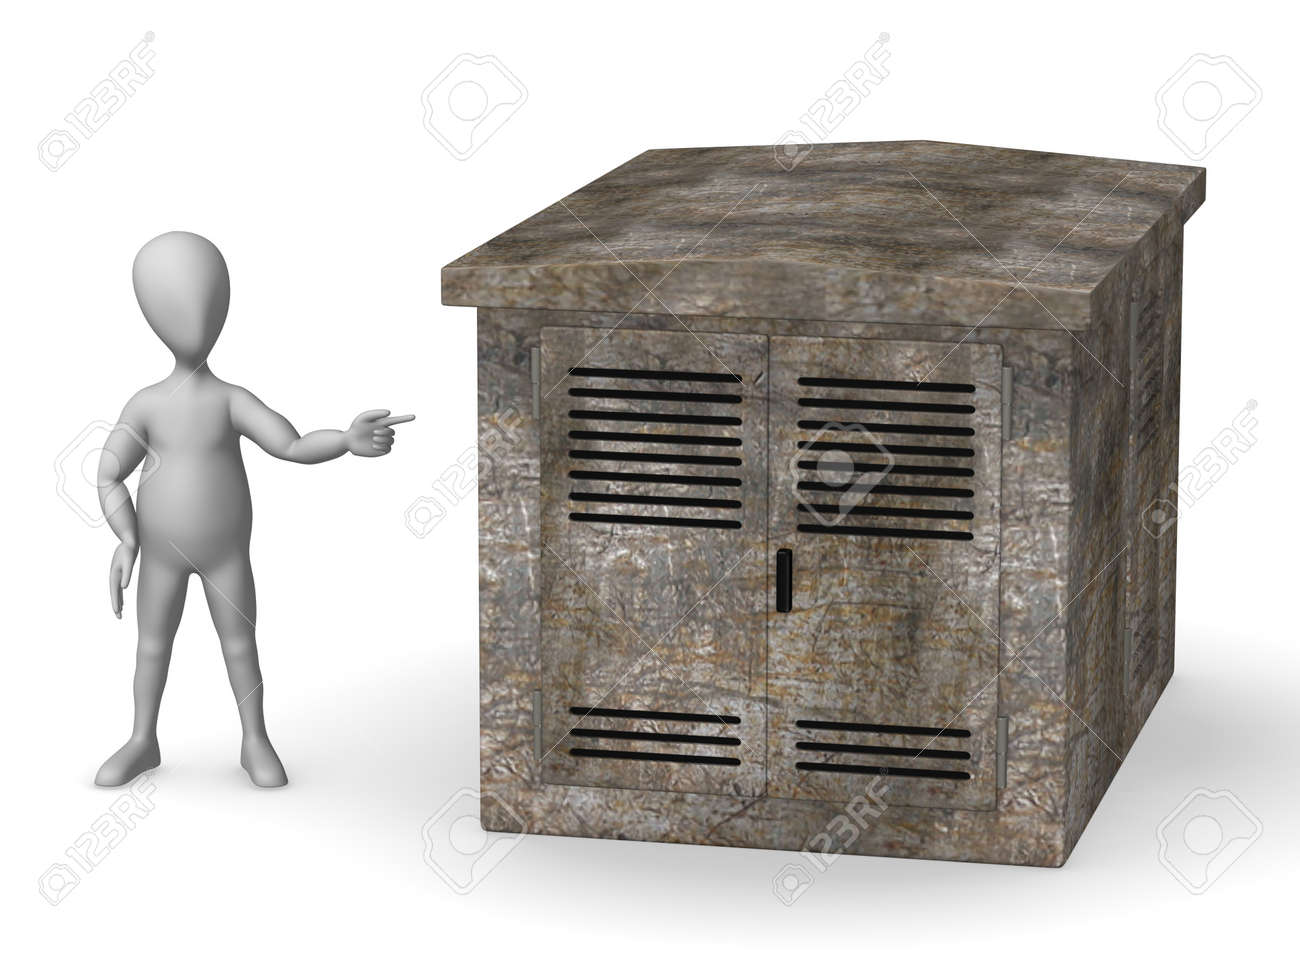 3d render of cartoon character with industrial element Stock Photo - 12986044